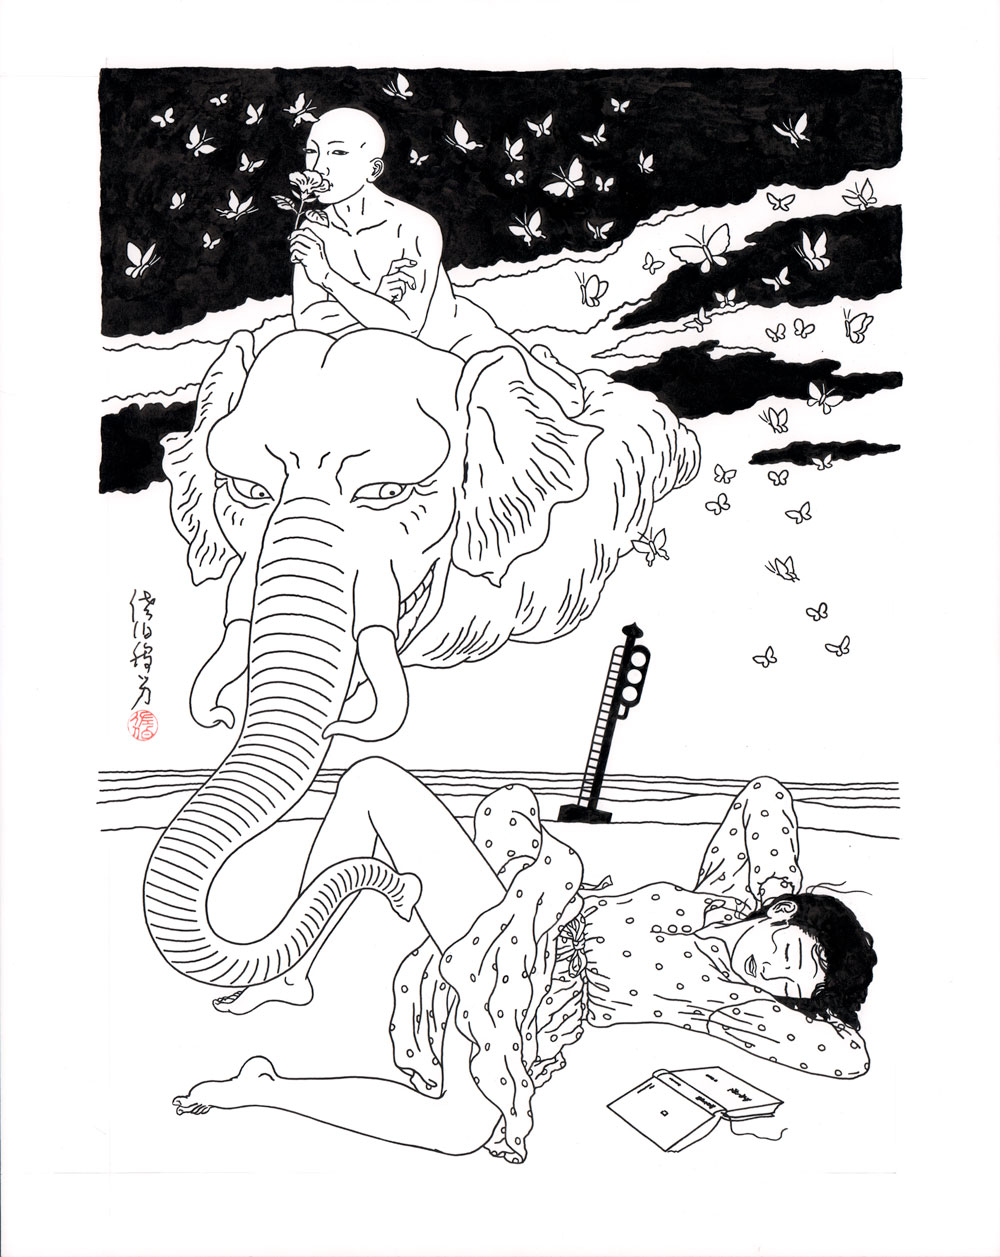 Toshio SaekiMadoromi, 2015Ink on paper.15 x 19.5 in. unframed